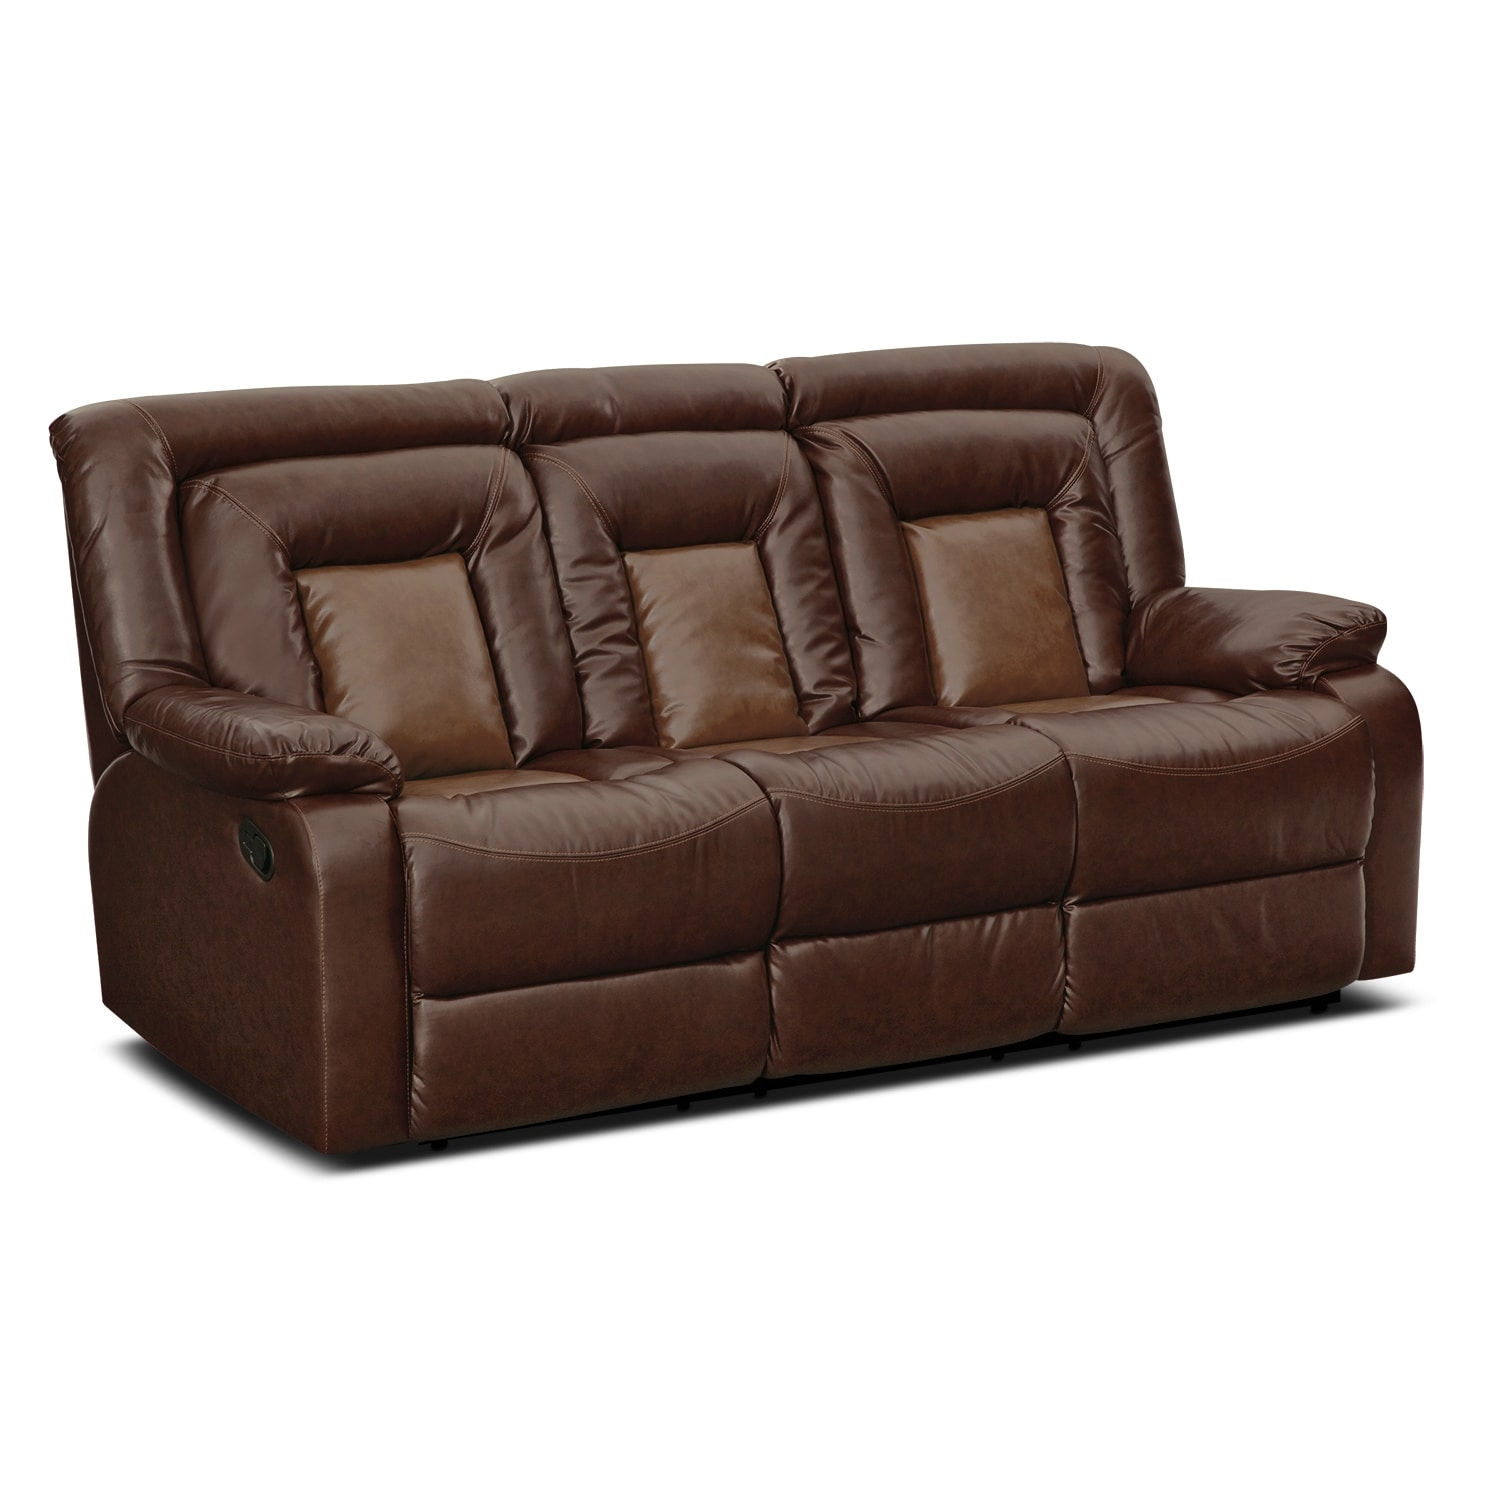 Furnishings for every room online and store furniture for Leather reclining sofa